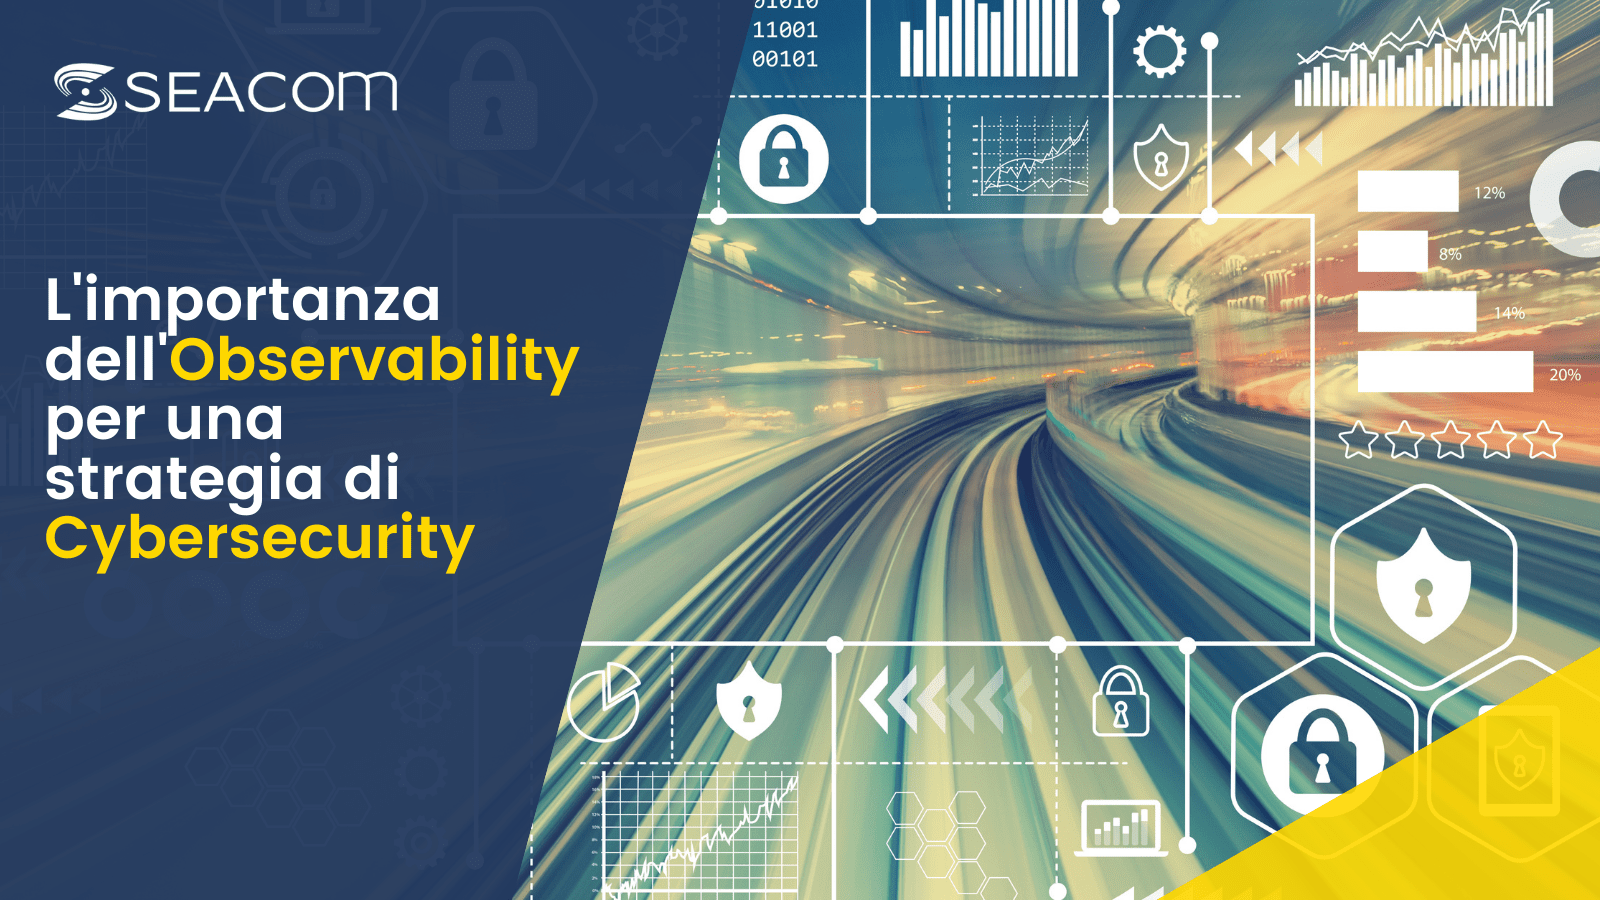 L'importanza dell'Observability per una strategia di Cybersecurity